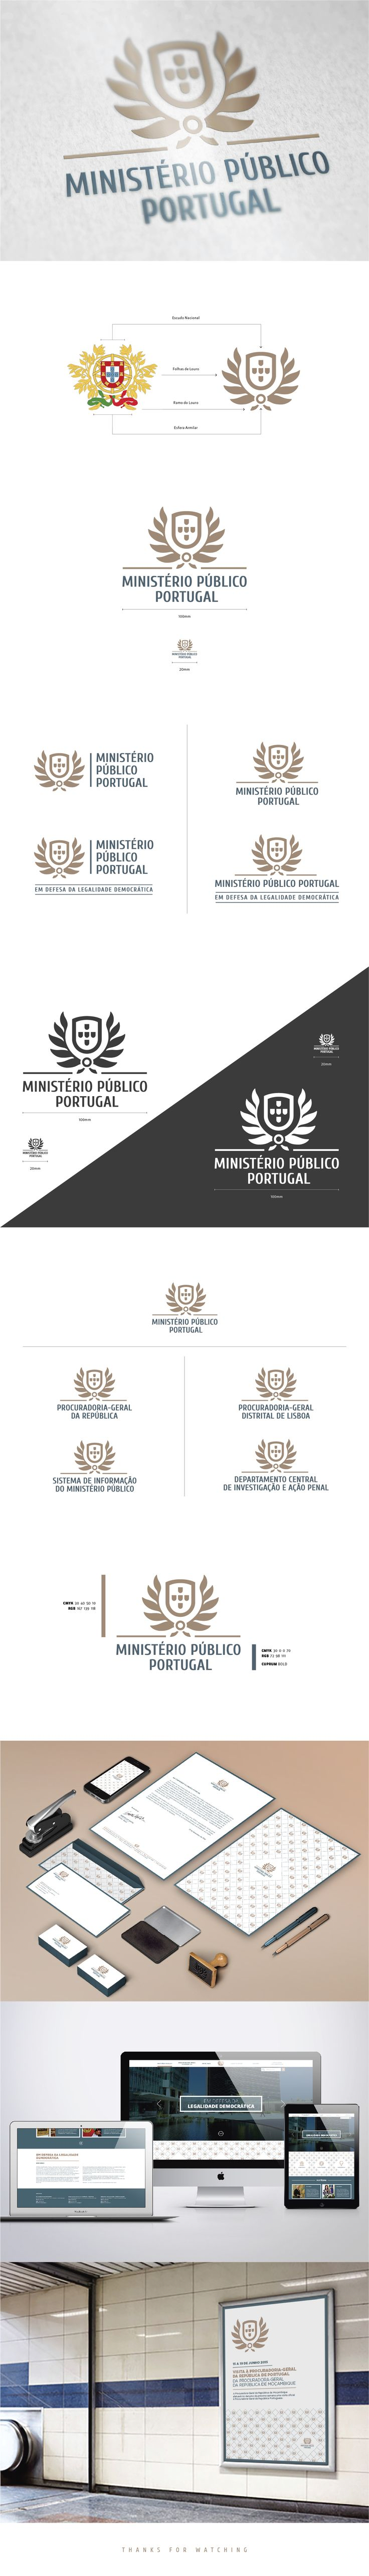 Mike Carreira on Behance #graphicdesign #branding #corporateidentity #logo #design #ministry #creativeprocess #rebranding #contest #government